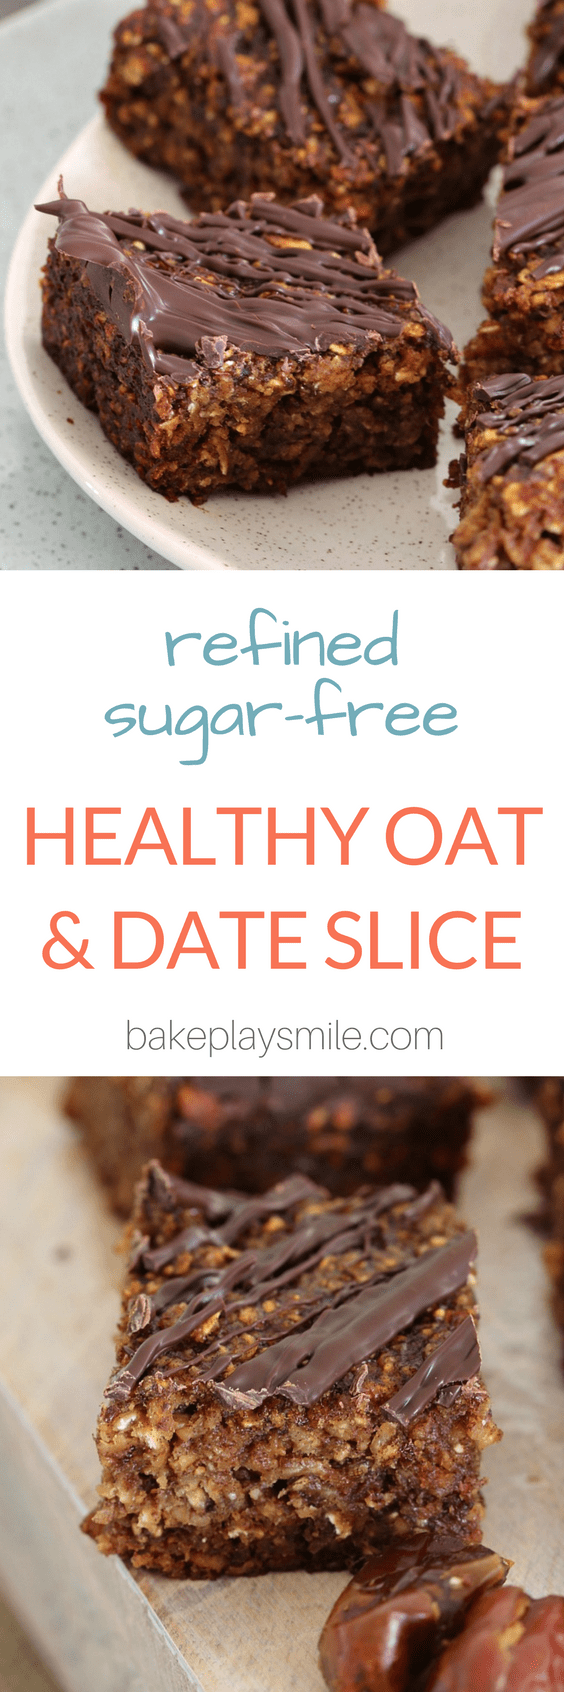 Healthy Oat & Date Slice